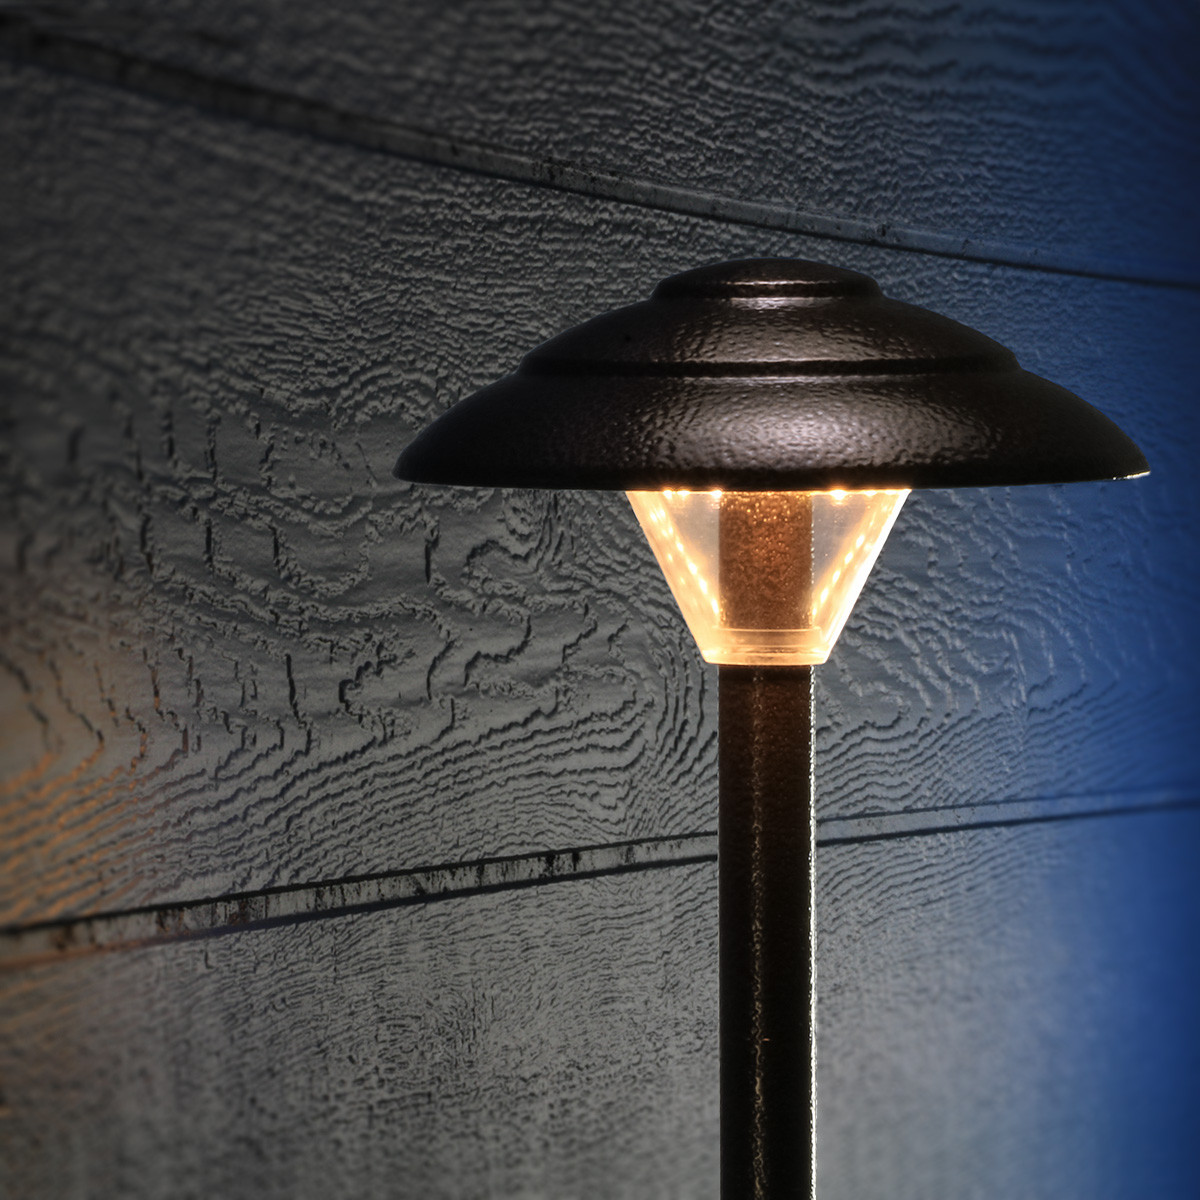 Keep your deck and backyard safe for guests with the Stepped Mushroom Pathway Light by Dekor.